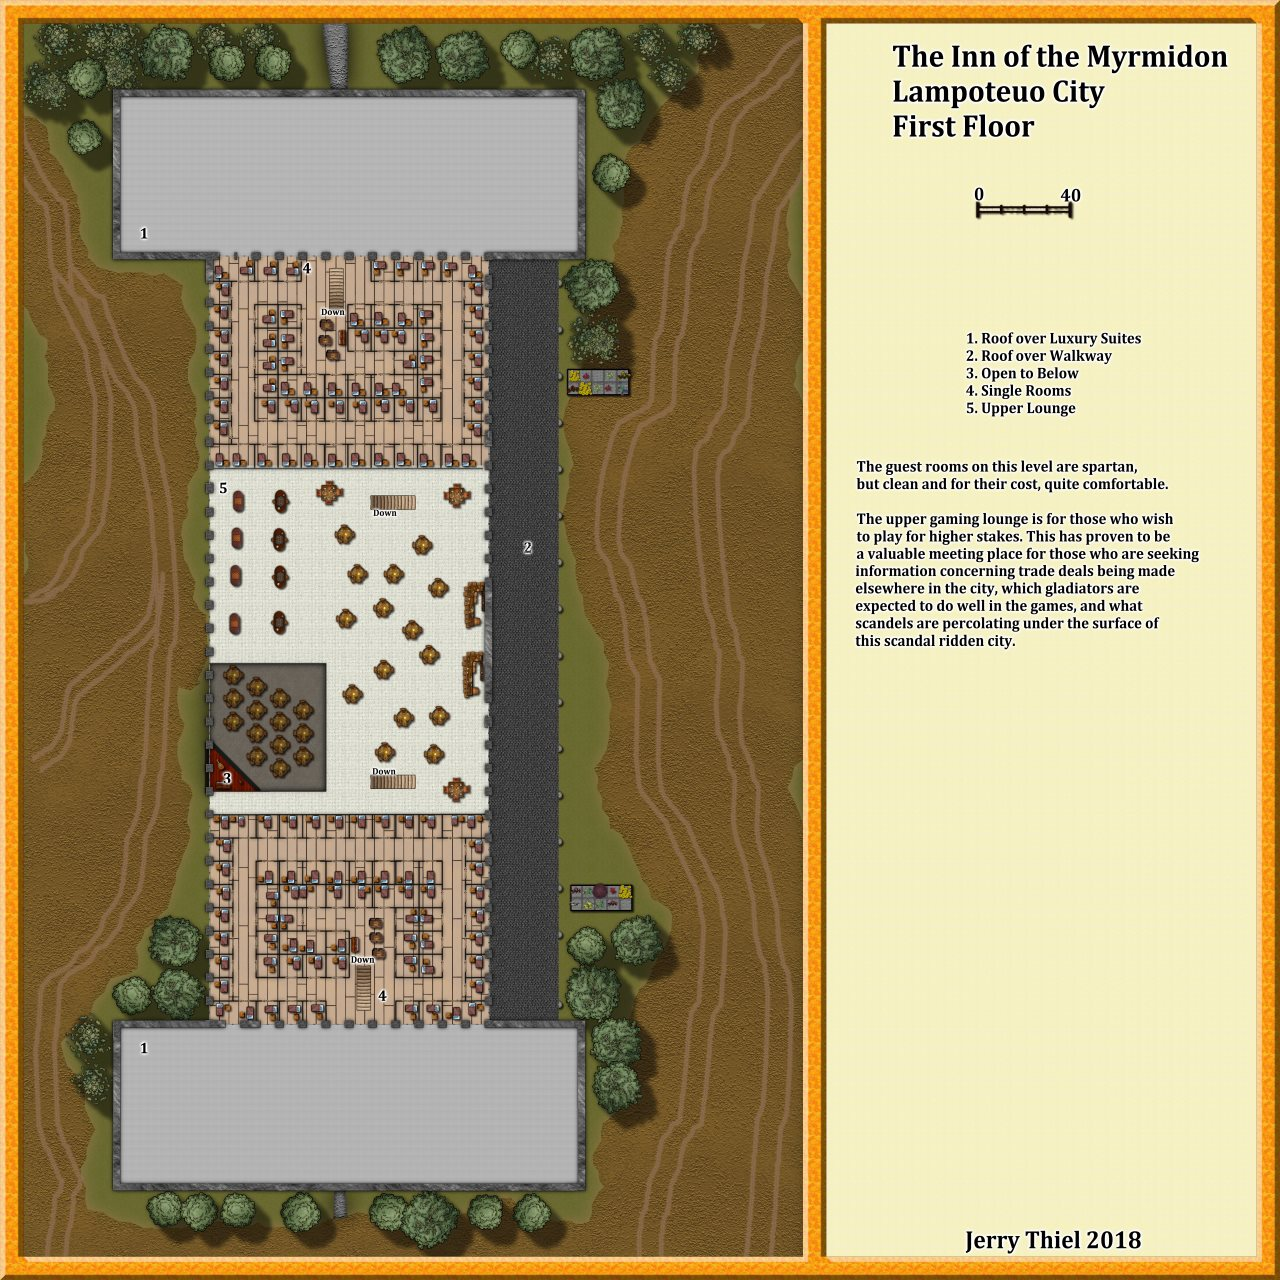 Nibirum Map: The Inn of the Myrmidon First Floor by Jerry Thiel